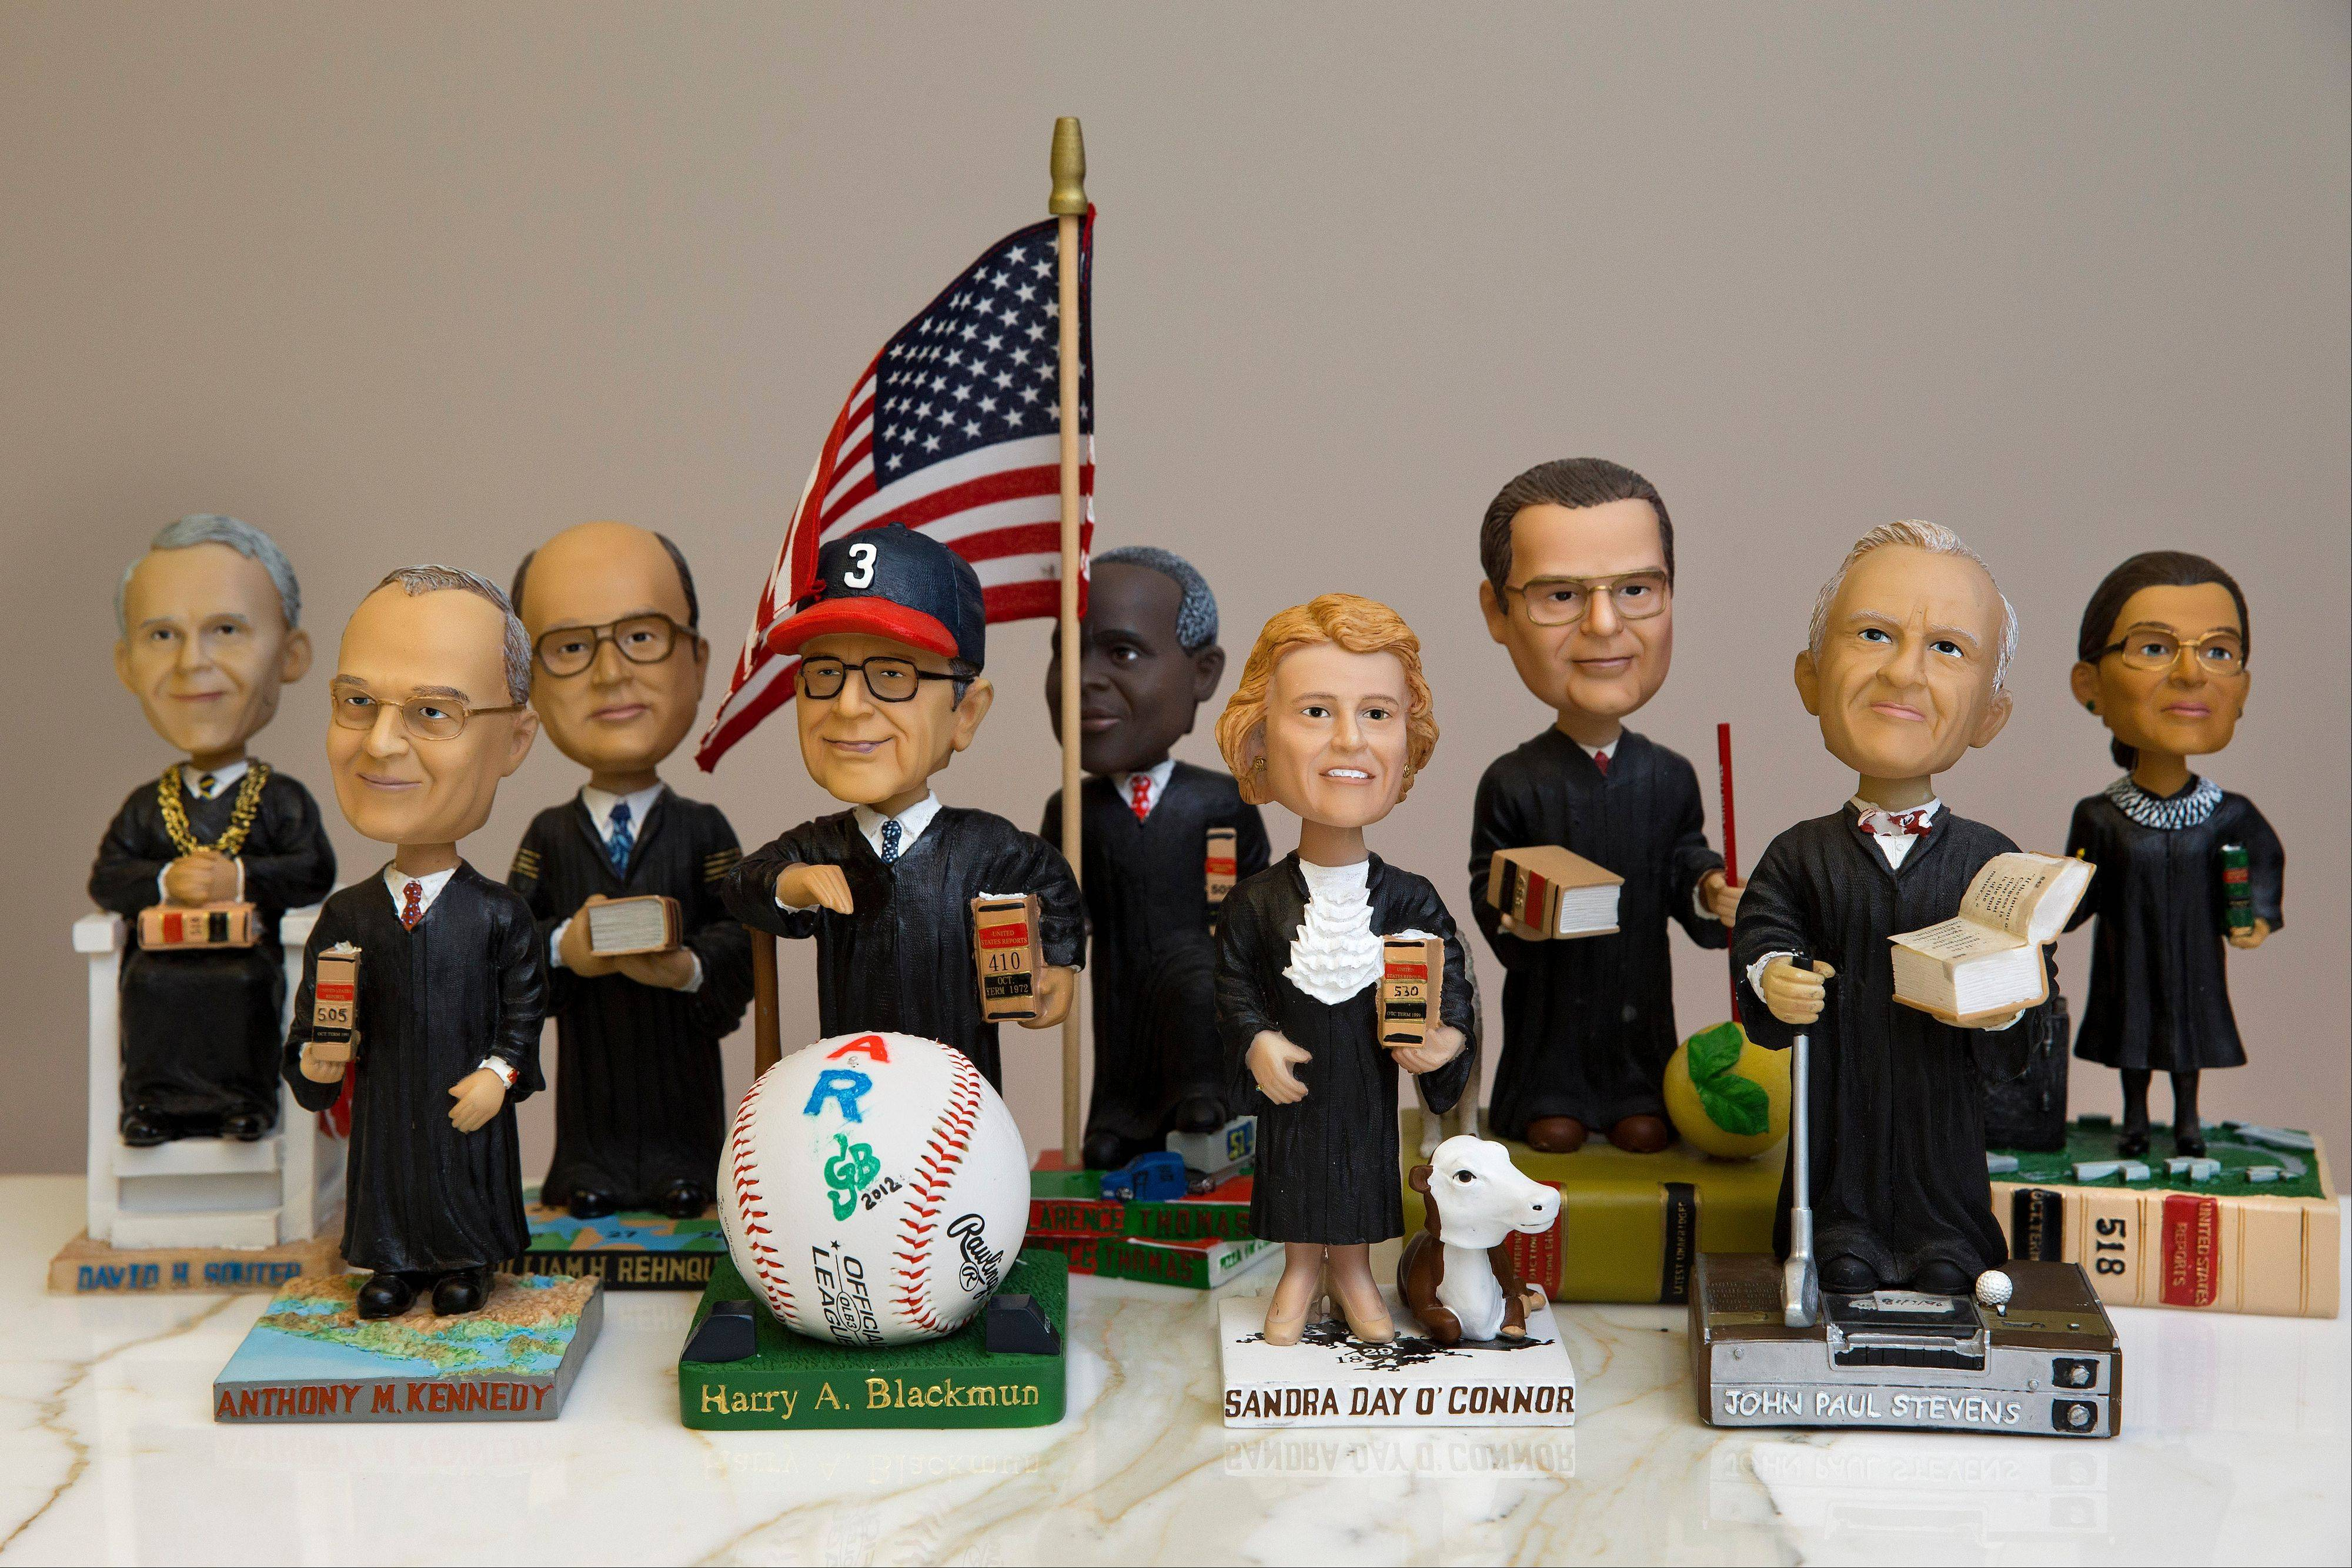 These limited edition bobbleheads of U.S. Supreme Court justices are the work of law professor Ross Davies, who has been creating them for the past ten years. When finished, they arrive unannounced on the real justices' desks, and fans will go to some lengths to get one.